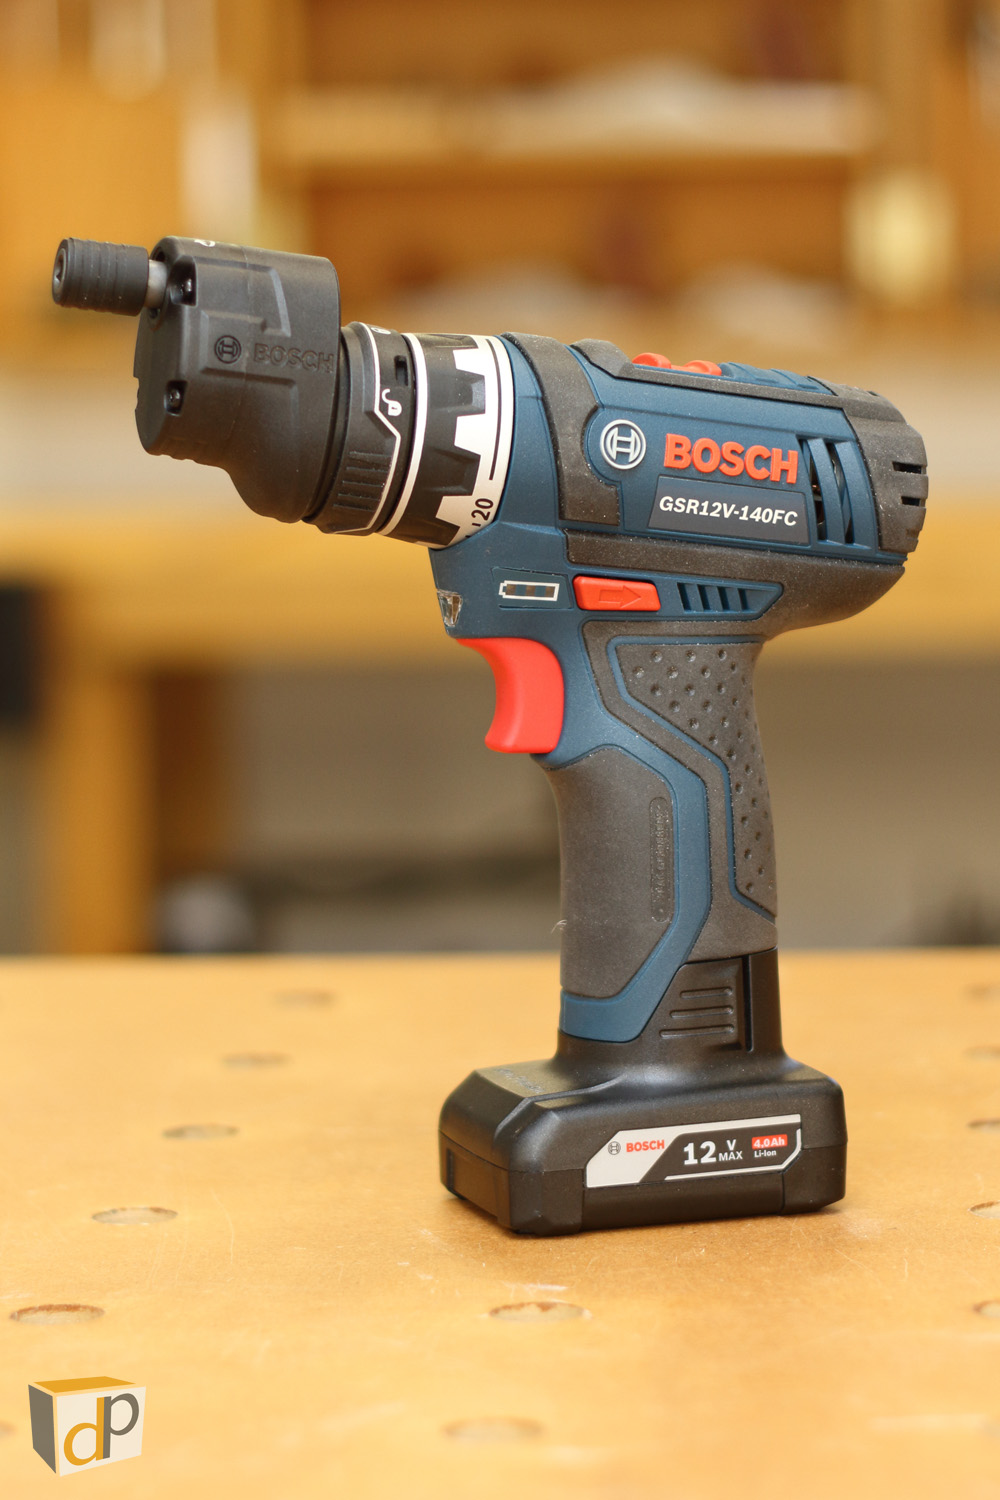 Flexiclick with the Bosch 12V 4.0 Ah Battery